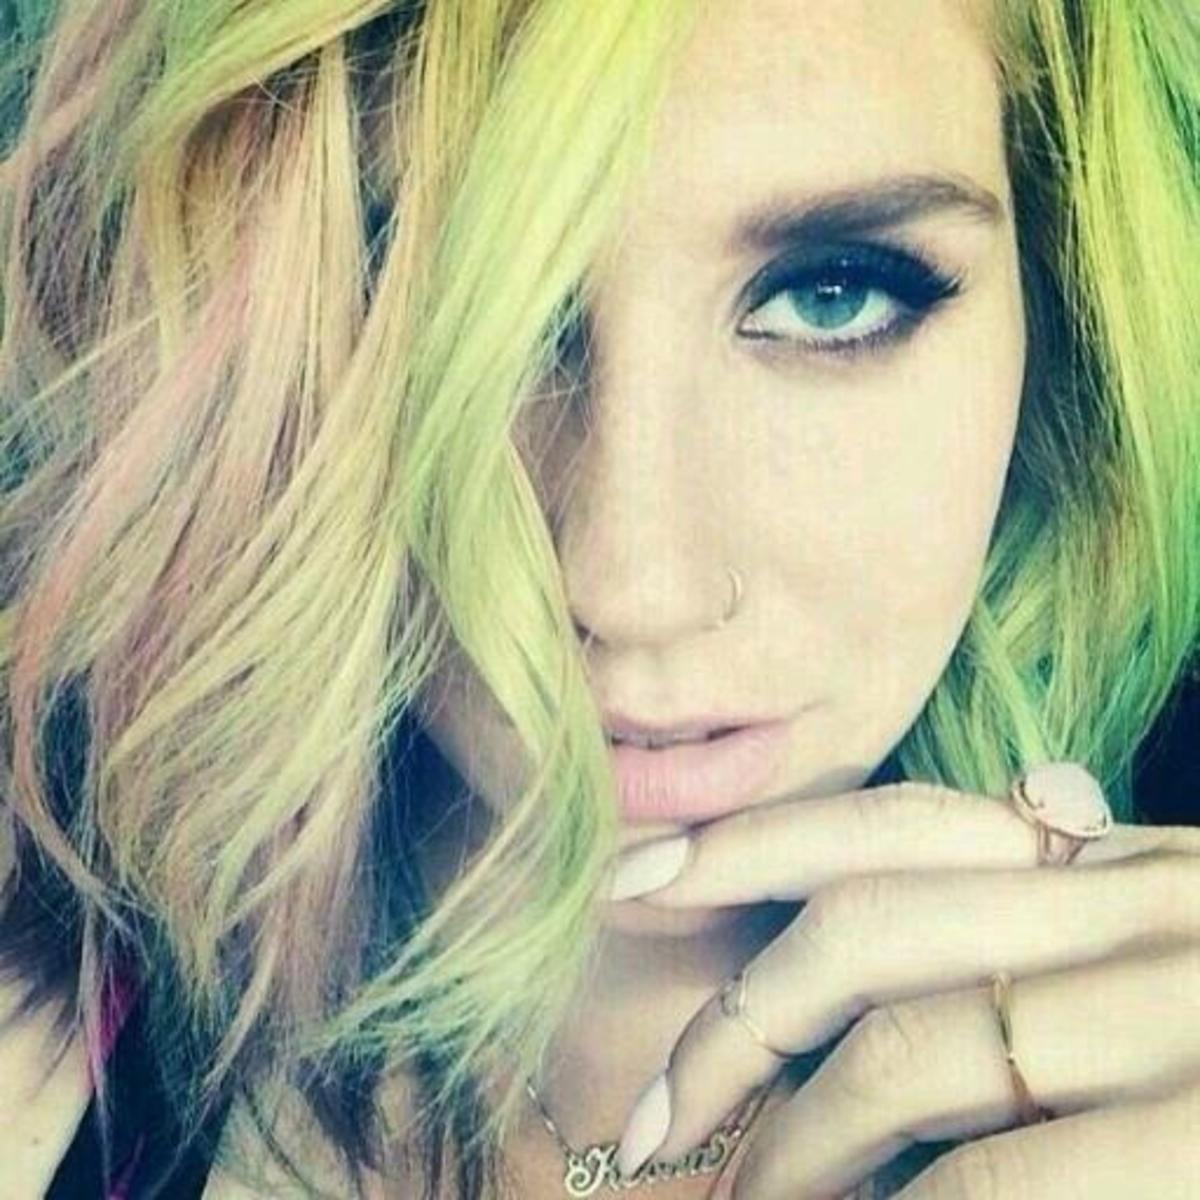 Kesha is moving away from her party girl image and has dropped the $